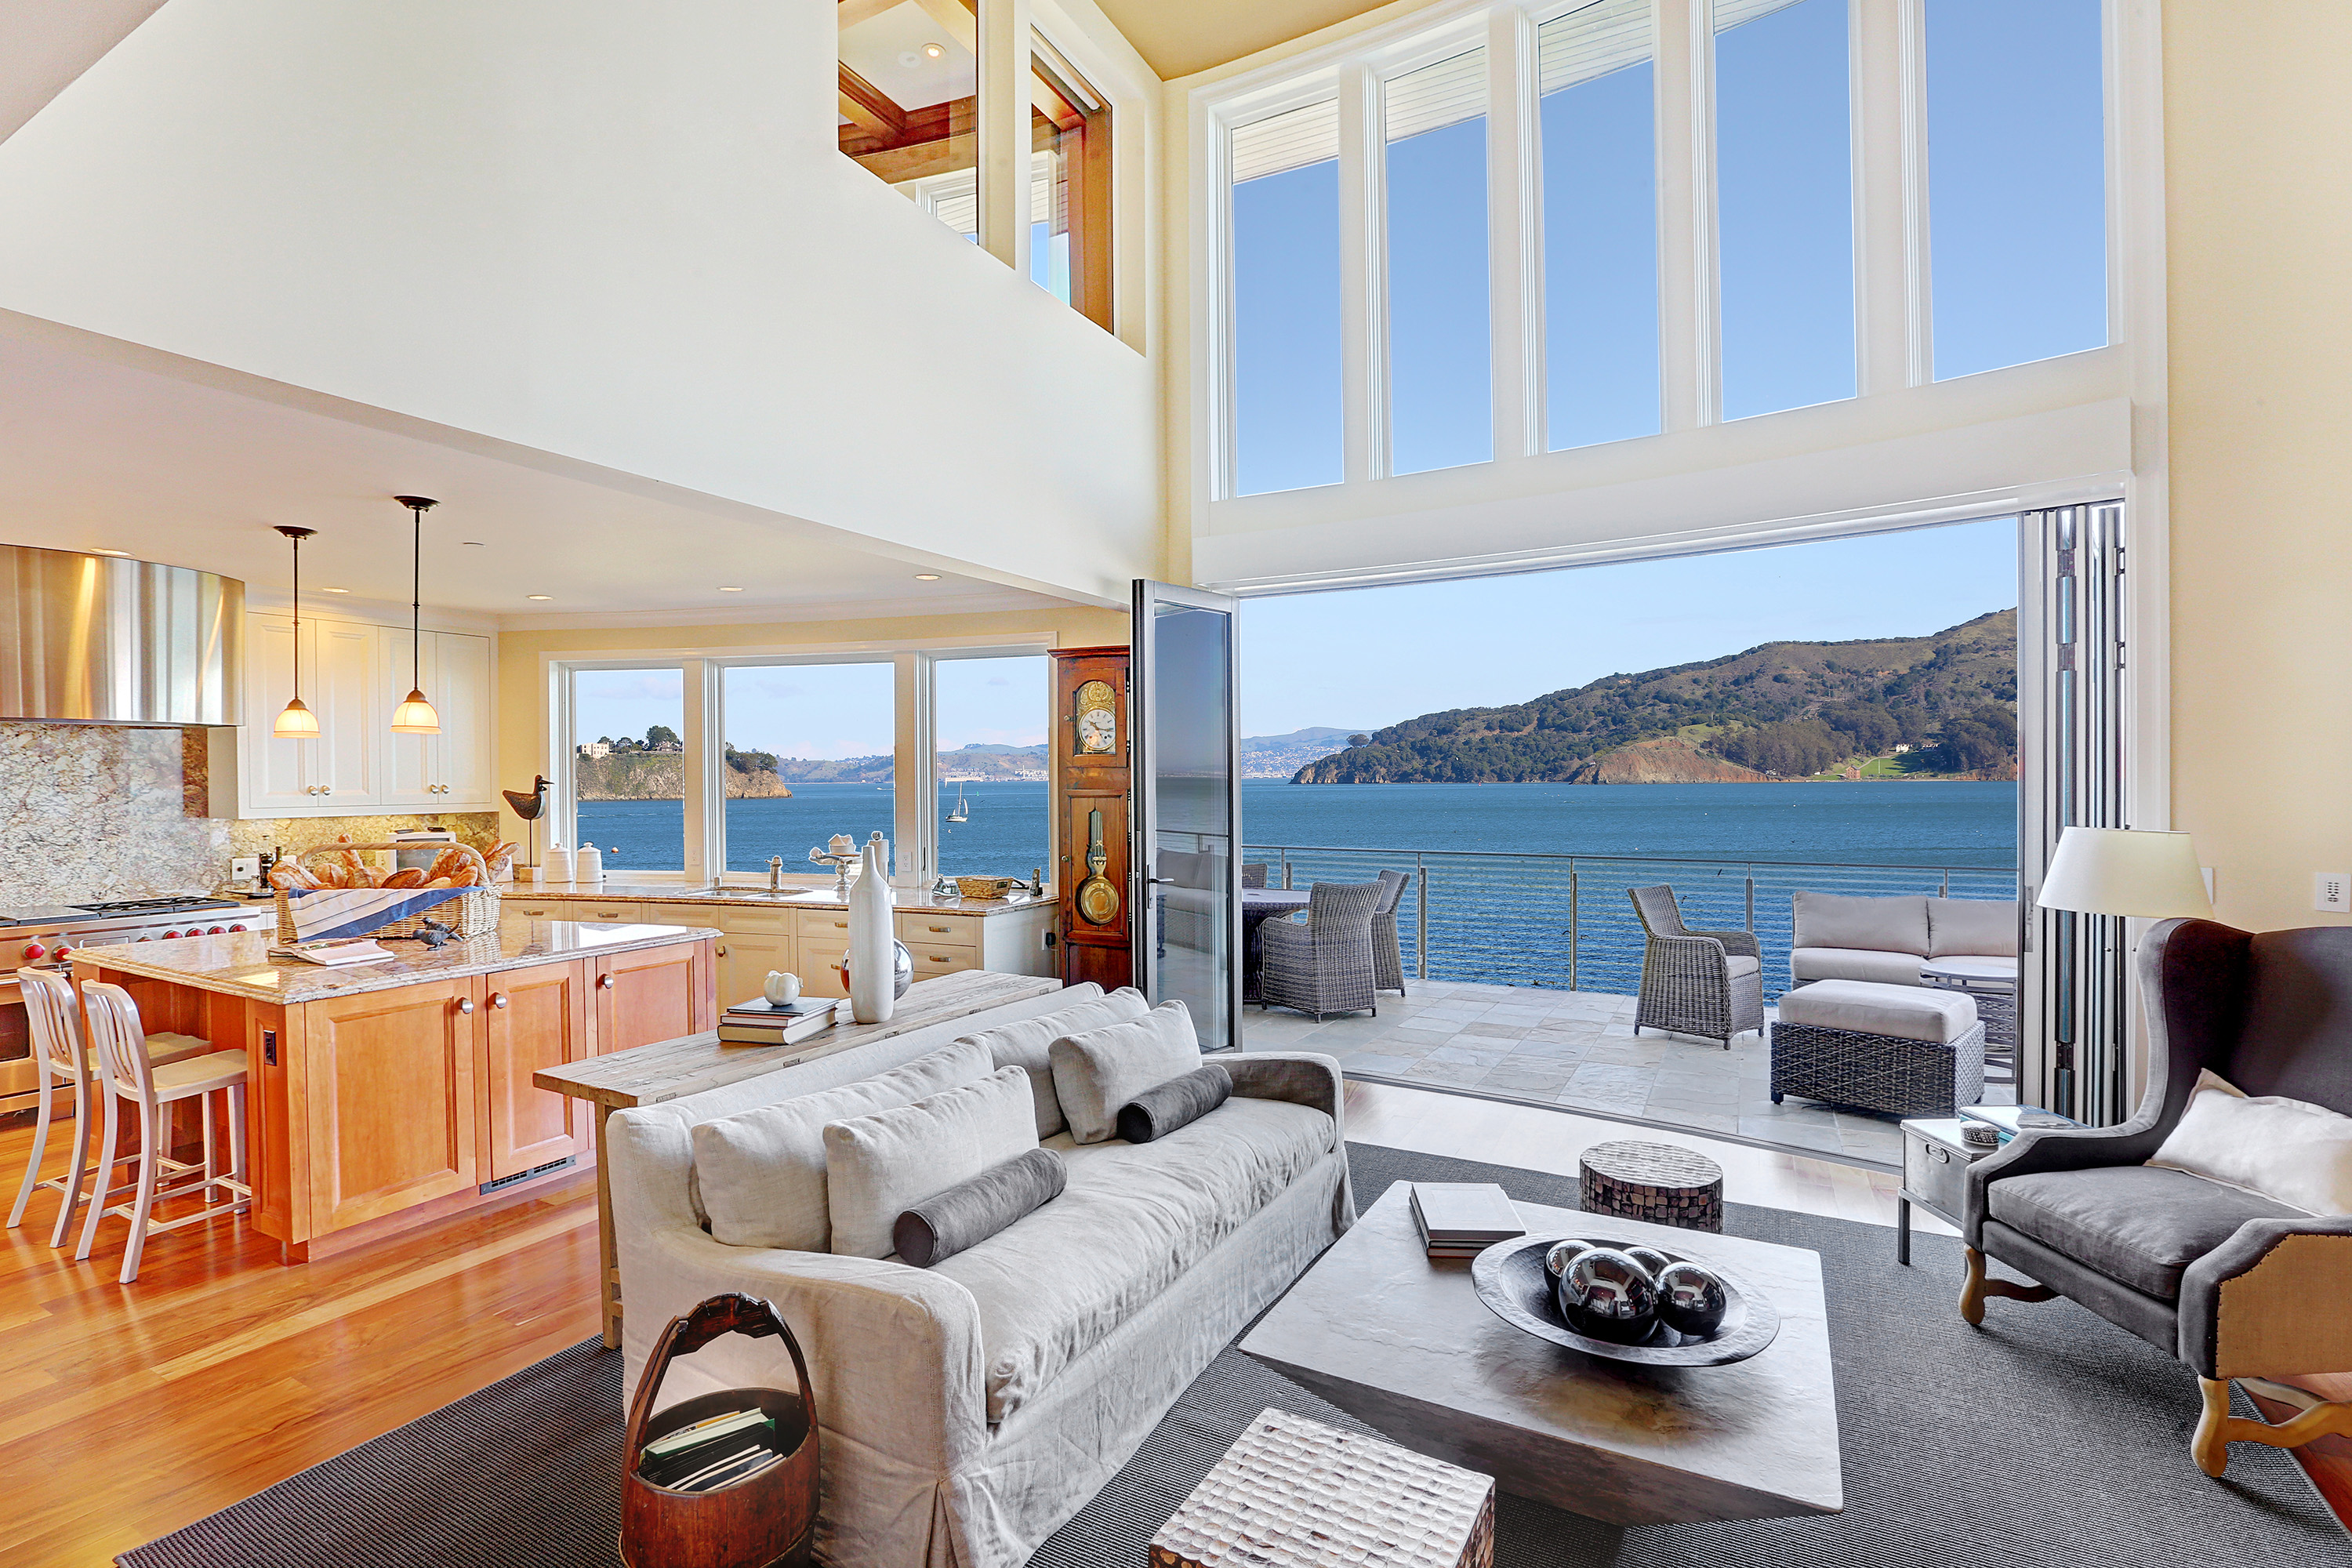 Single Family Home for Sale at Rare Sausalito Waterfront Luxury Home 40 Alexander Avenue Sausalito, 94965 United States